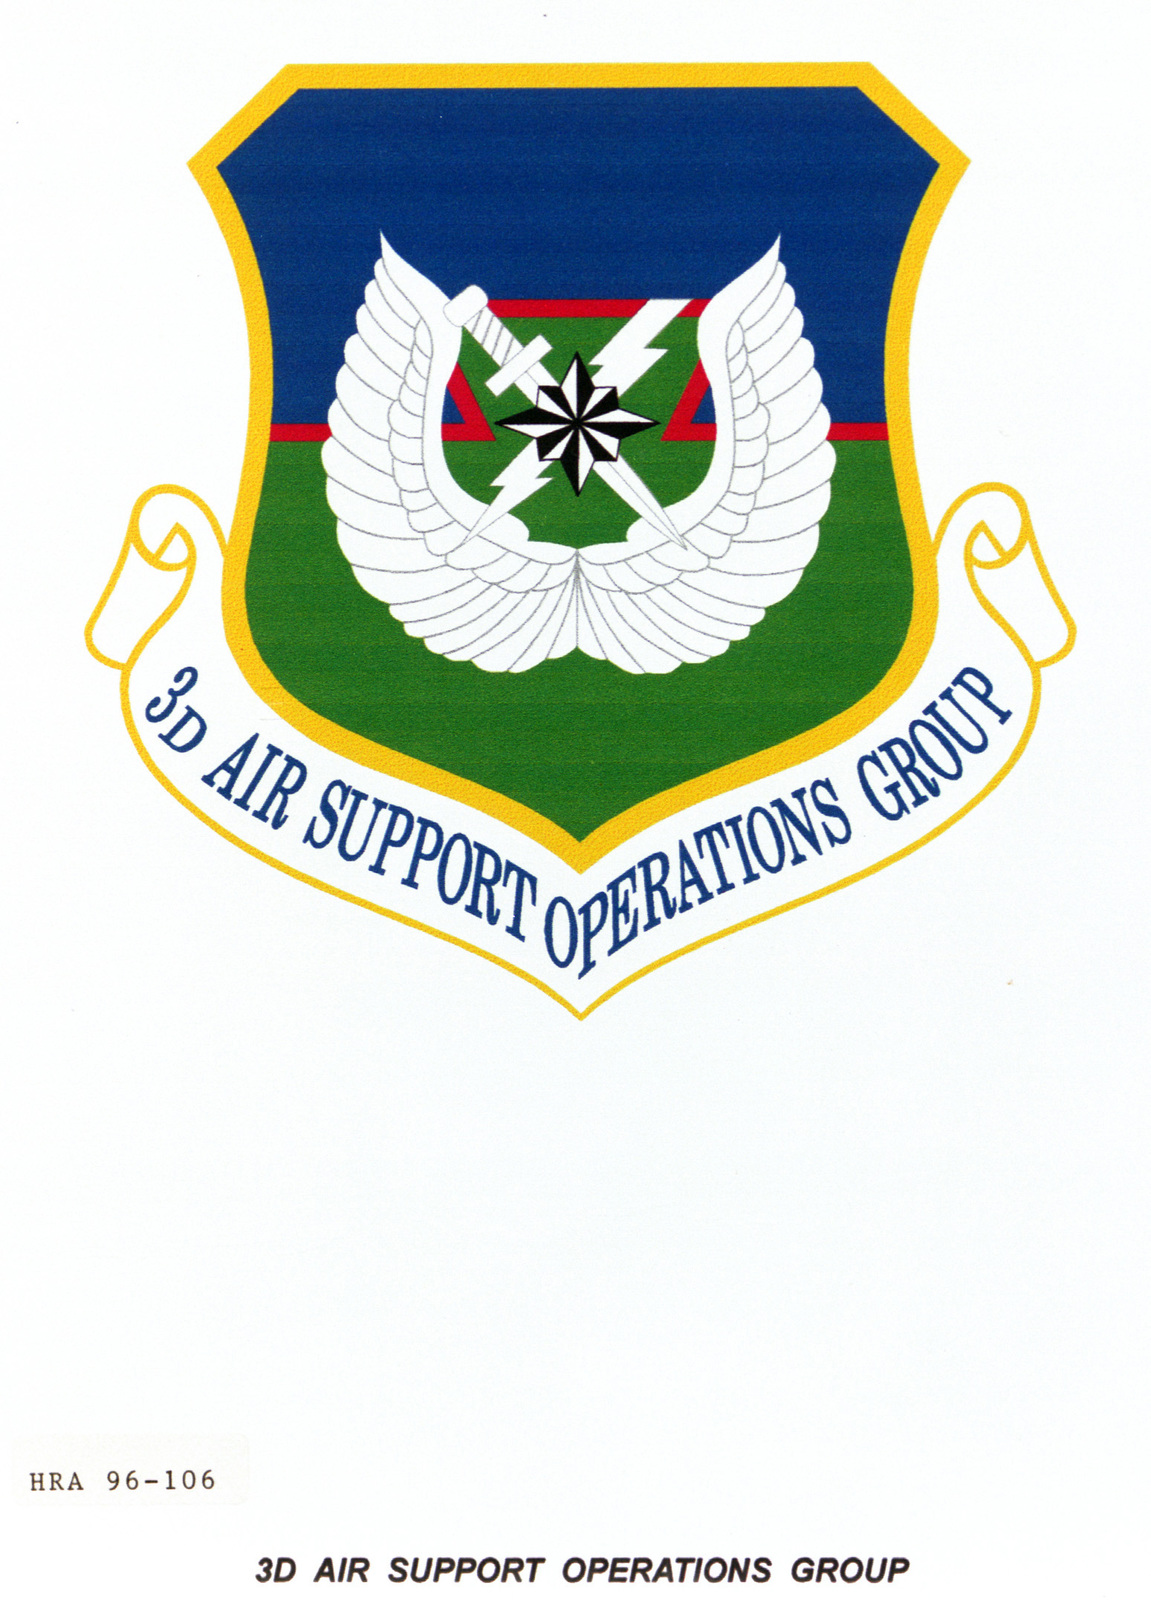 Air Force Organizational Emblem. 3rd Air Support Operations Group Exact Date Shot Unknown